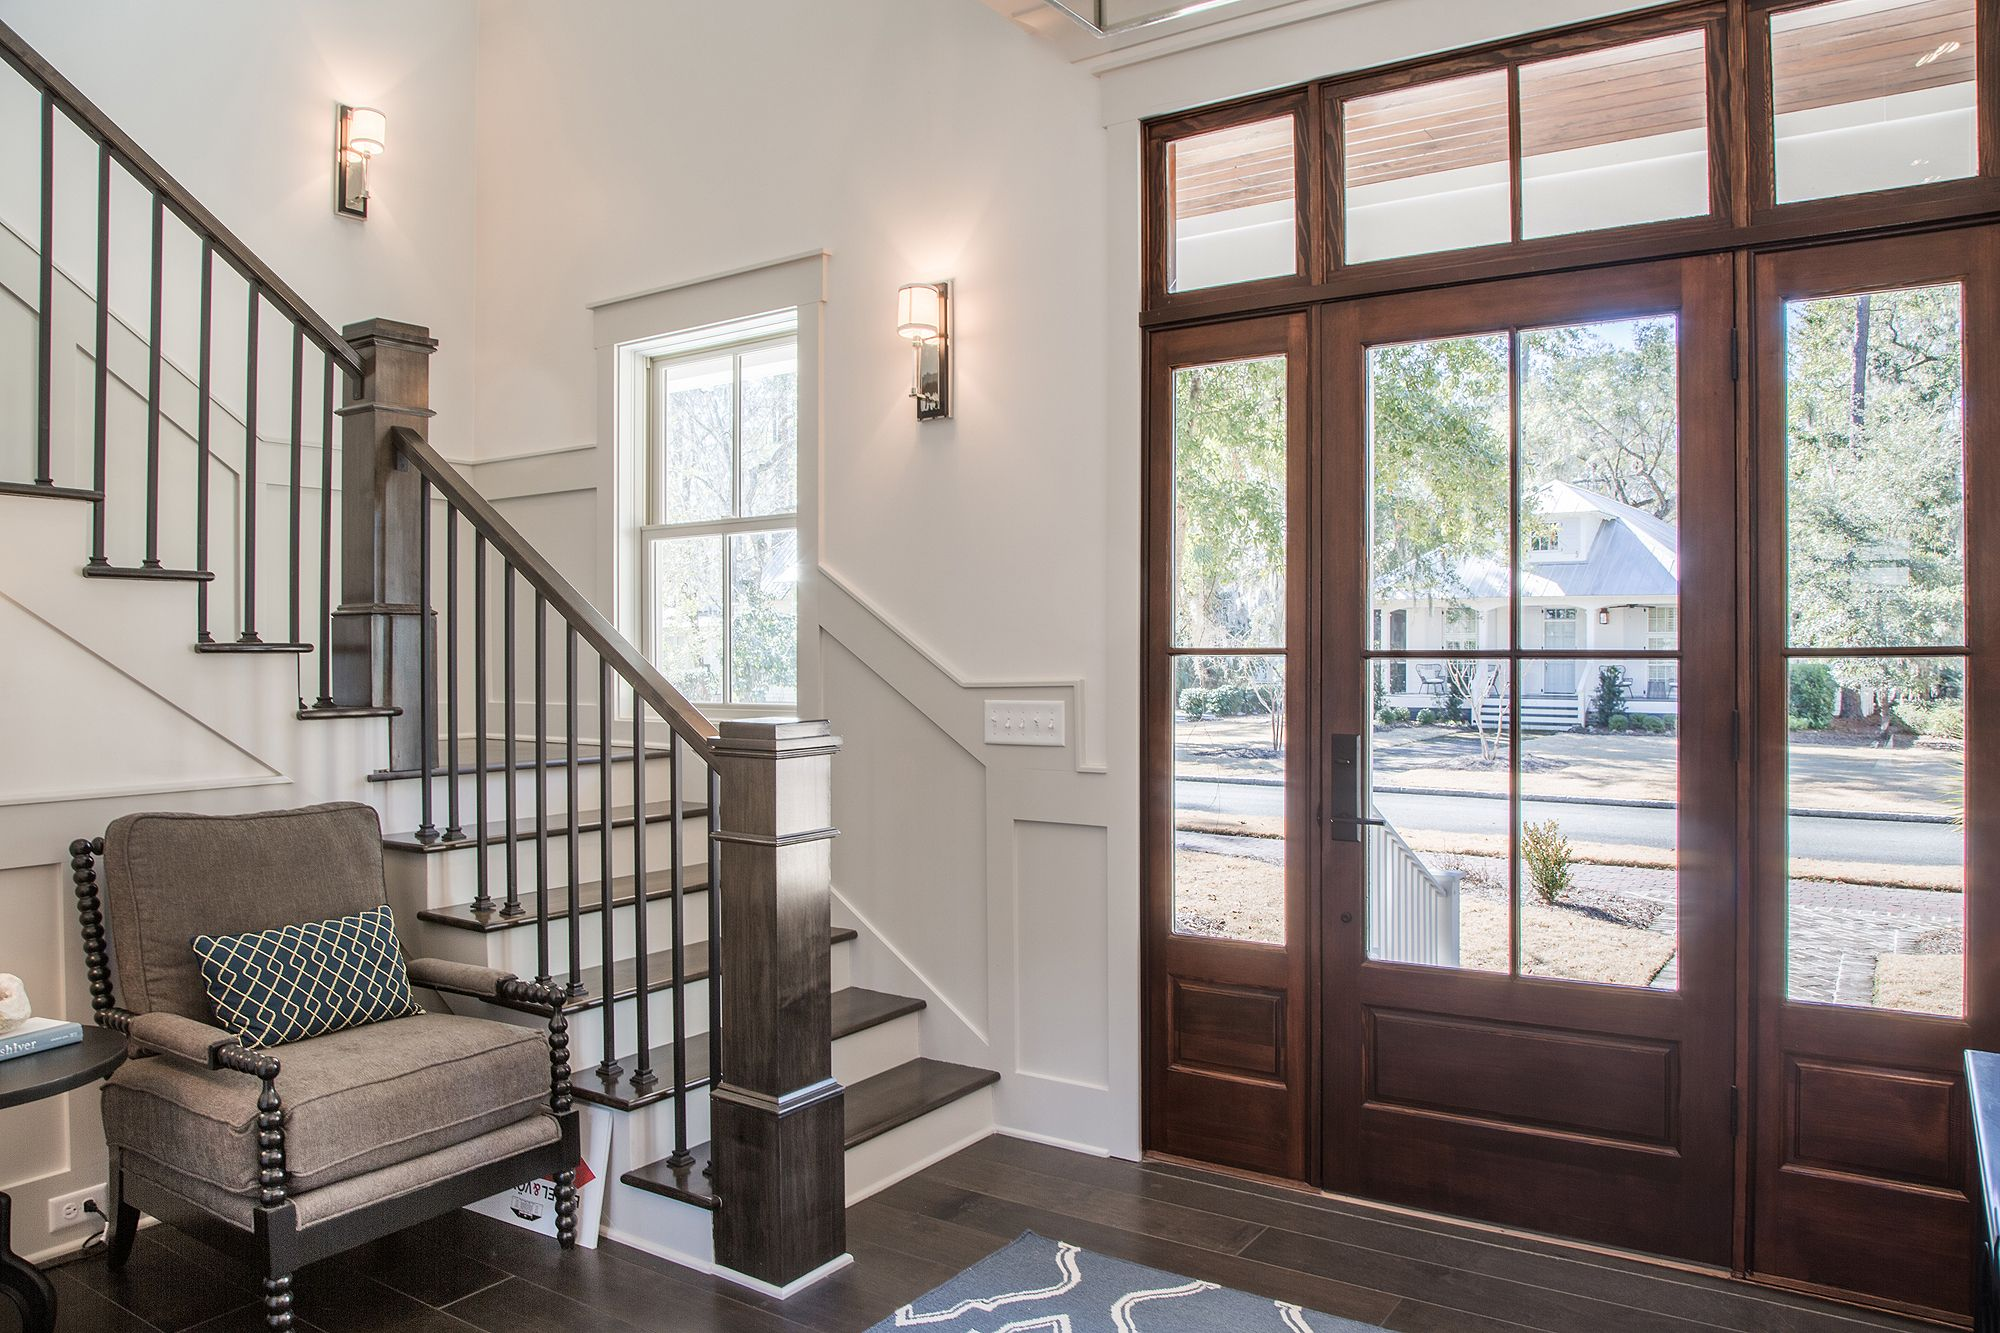 Beautiful Foyer | Grand Entrance | Southern Style Interior Design |  Lowcountry Living | Luxury Real